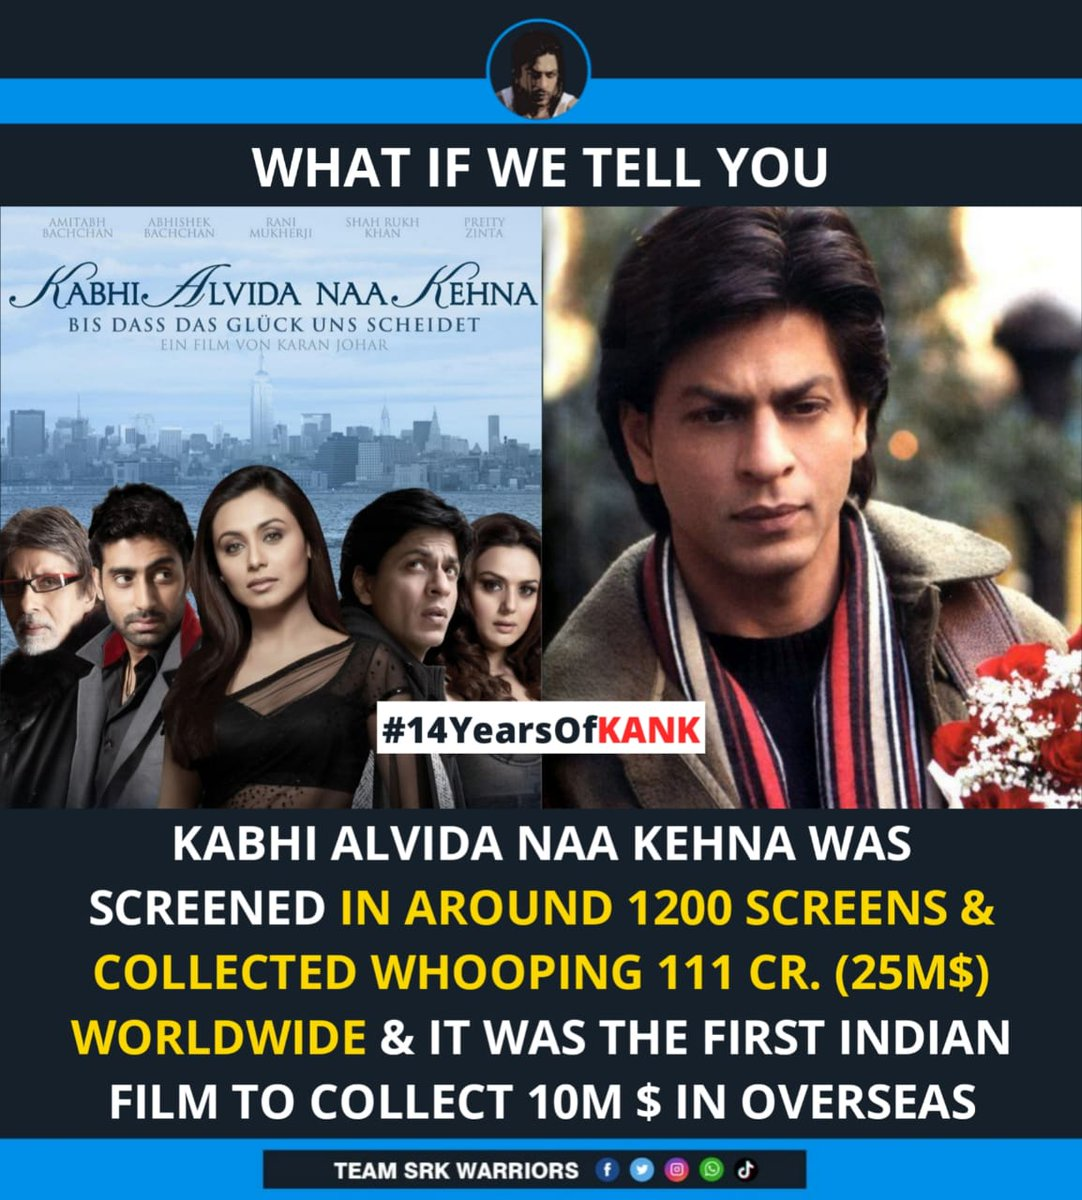 Kabhi Alvida Naa Kehna was screened in around 1200 screens & collected whopping 111 crore (25M$) Worldwide & it was the first Indian film to collect 10M $ in overseas! 🔥  #14YearsOfKANK